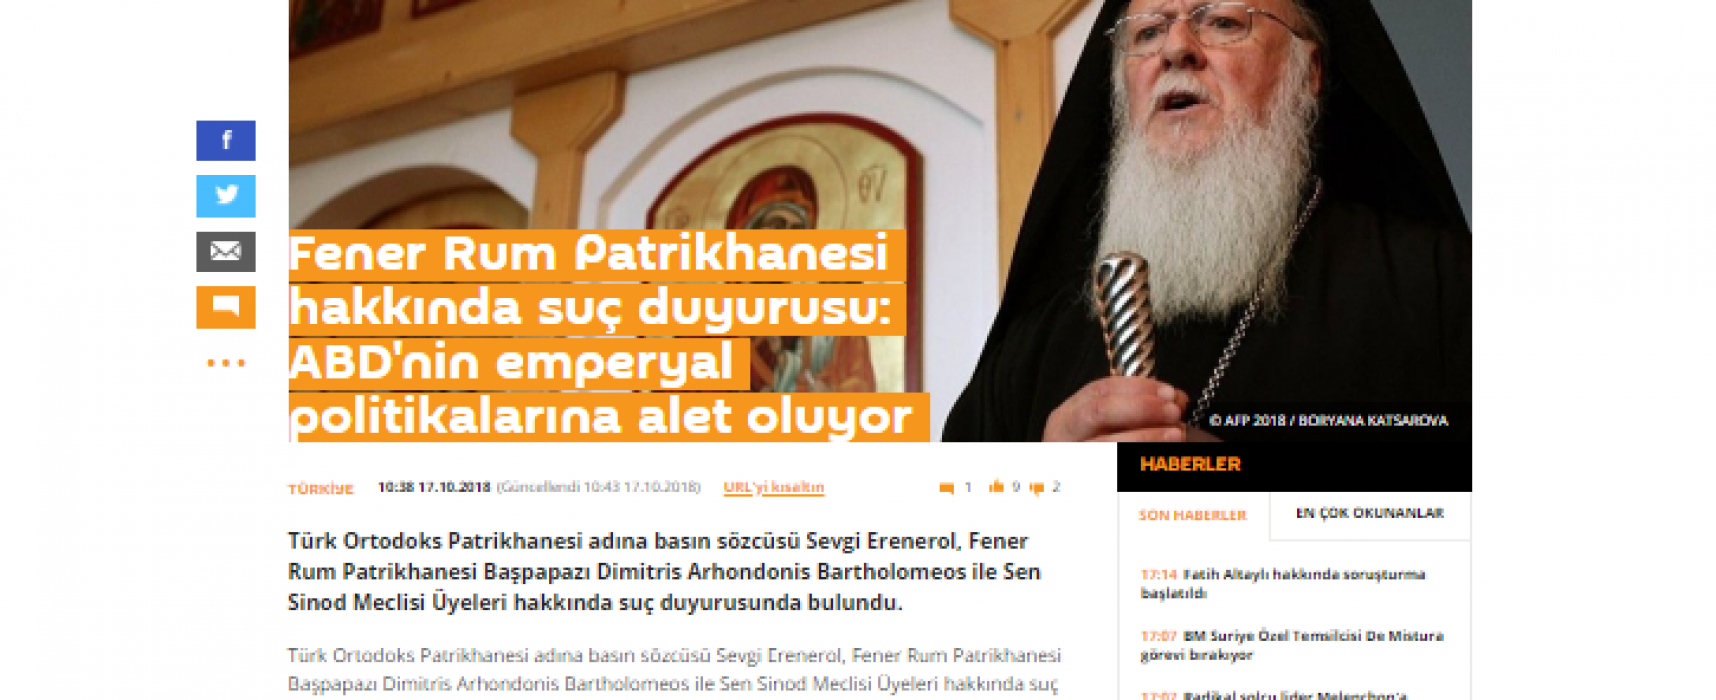 Manipulation: Tiny Turkish Orthodox Church Demands Legal Action against Constantinople Patriarch for Ukraine's Autocephaly